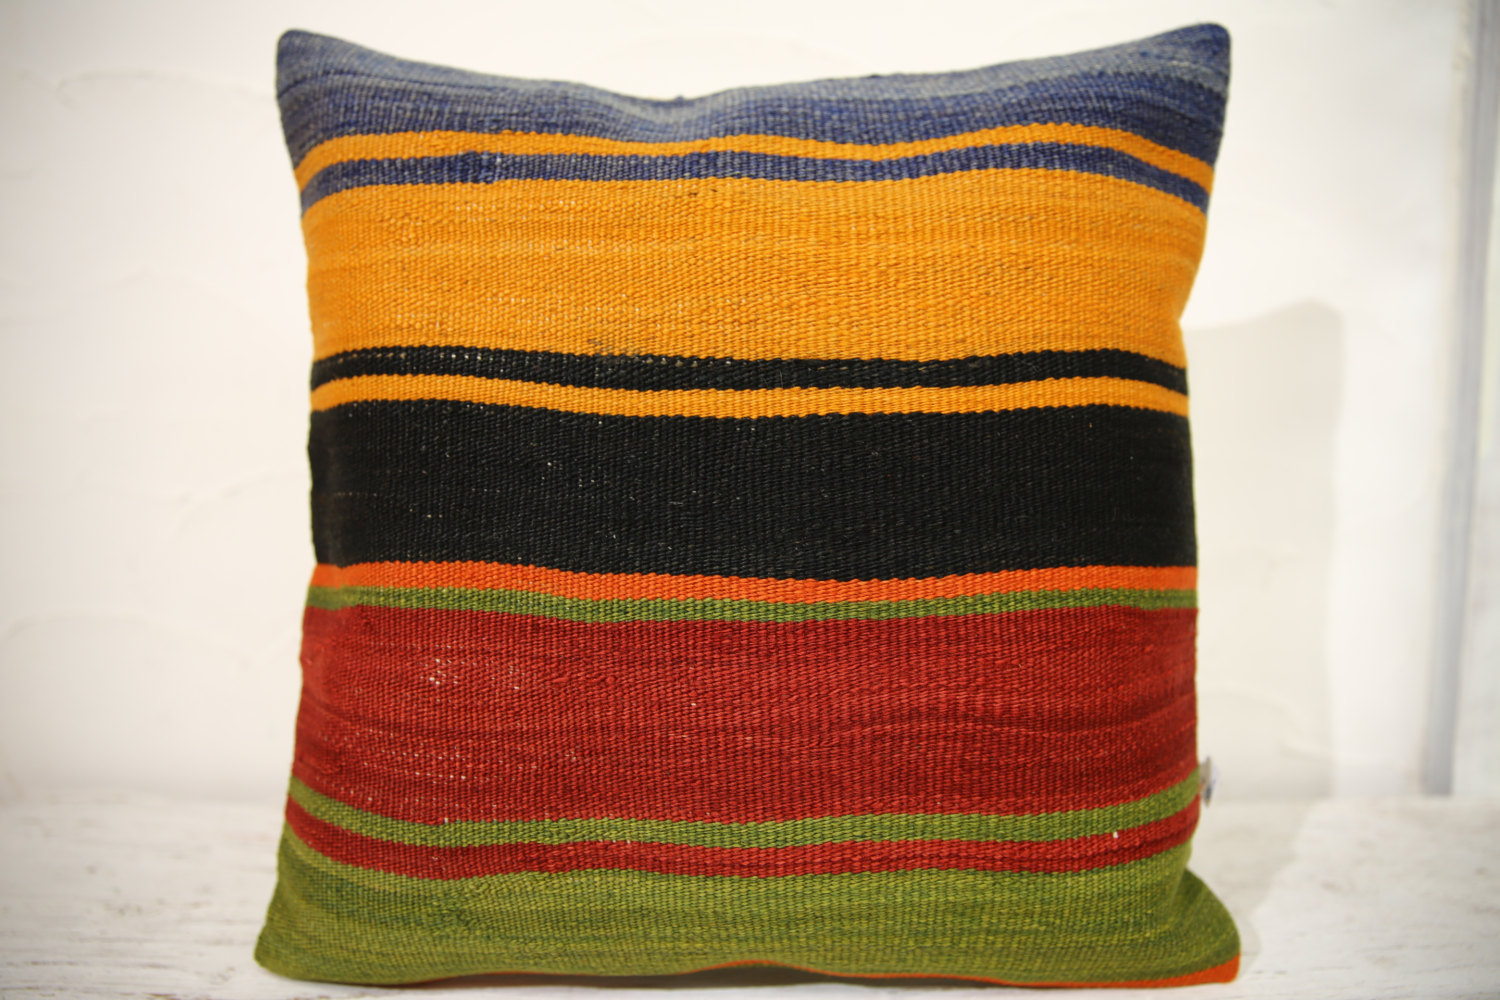 Kilim Pillows | 16x16 | Decorative Pillows | 930 | Accent Pillows,turkish pillow